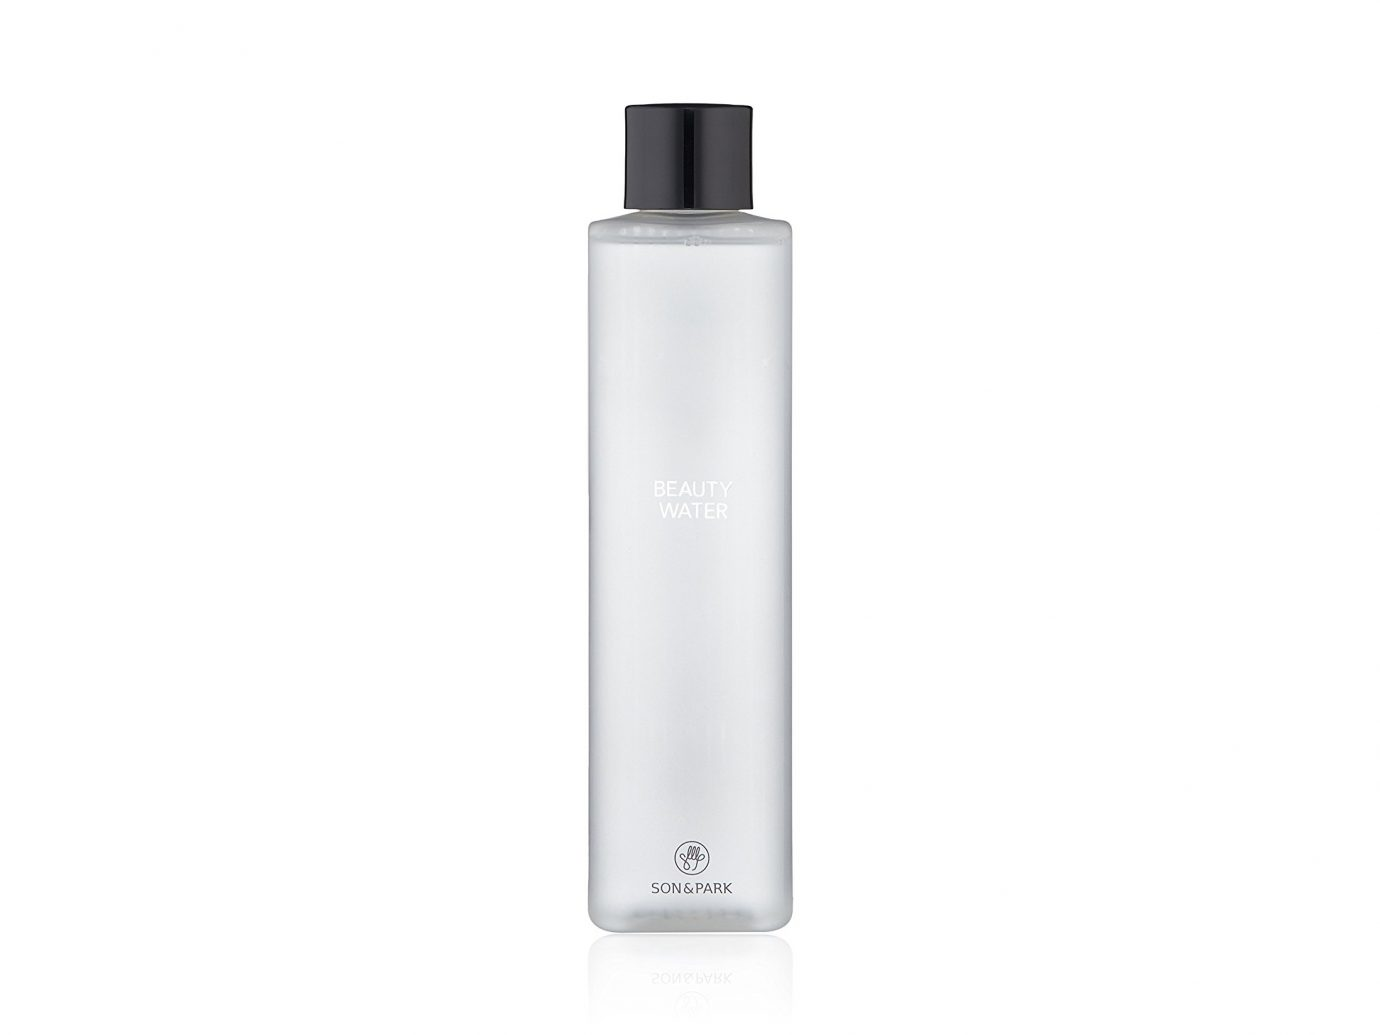 Korean beauty product Son & Park Beauty Water